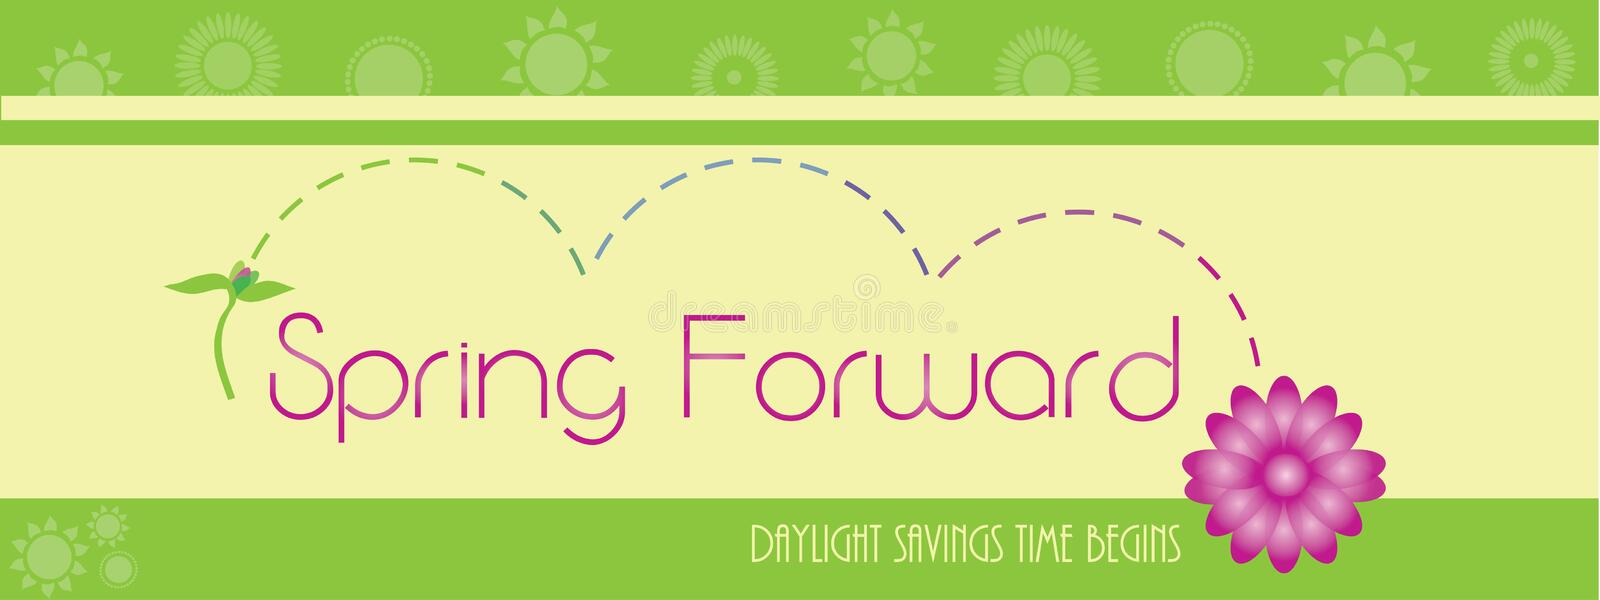 Spring Forward Background Sky and Grass Bubbles Light Flair stock illustration